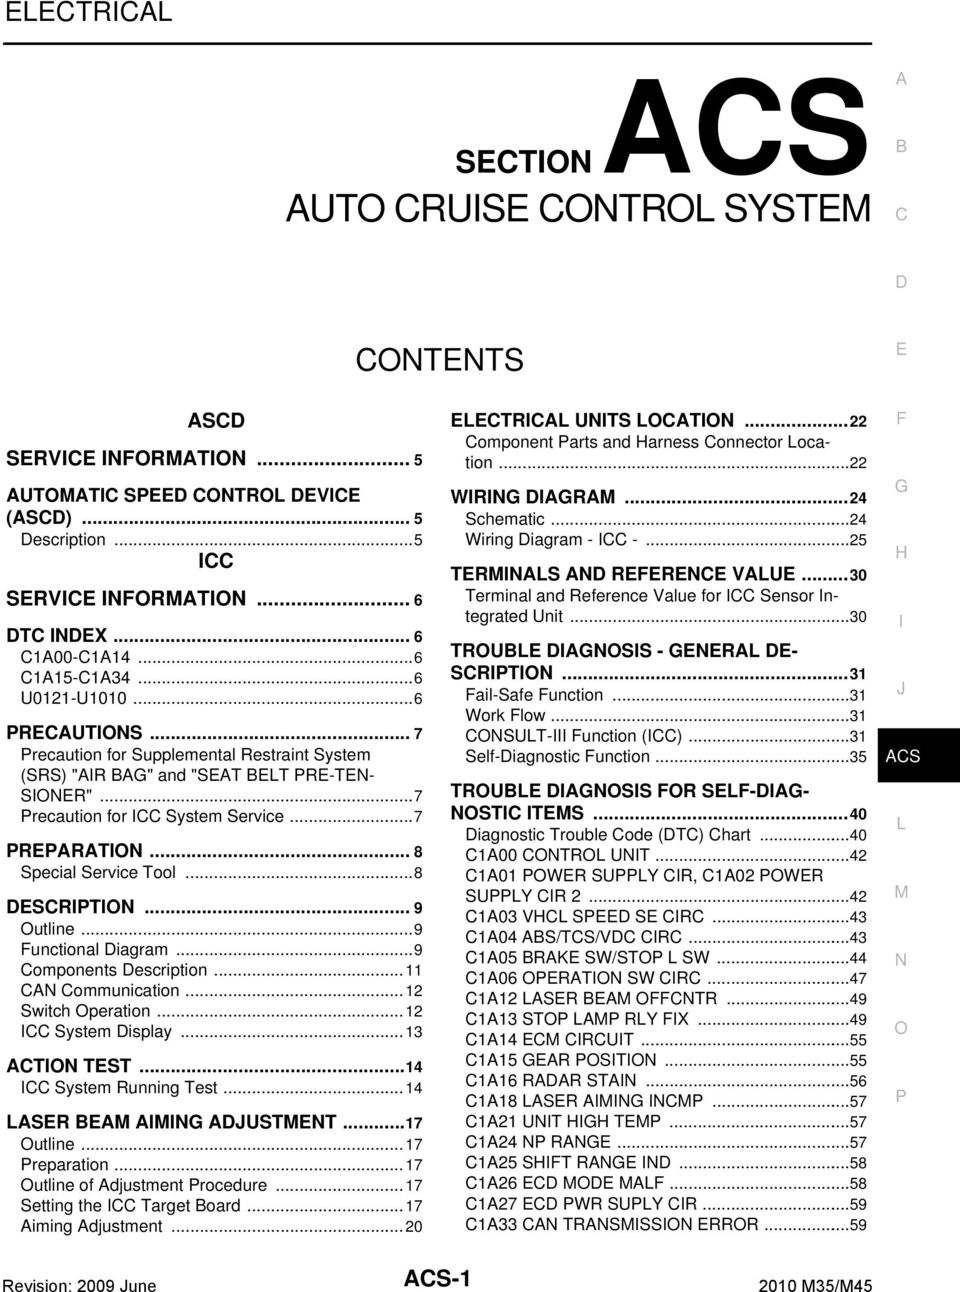 Auto Cruise Control System Pdf International Wiring Diagram Free Picture 9 Omponents Escription11 Ommunication12 Switch Peration